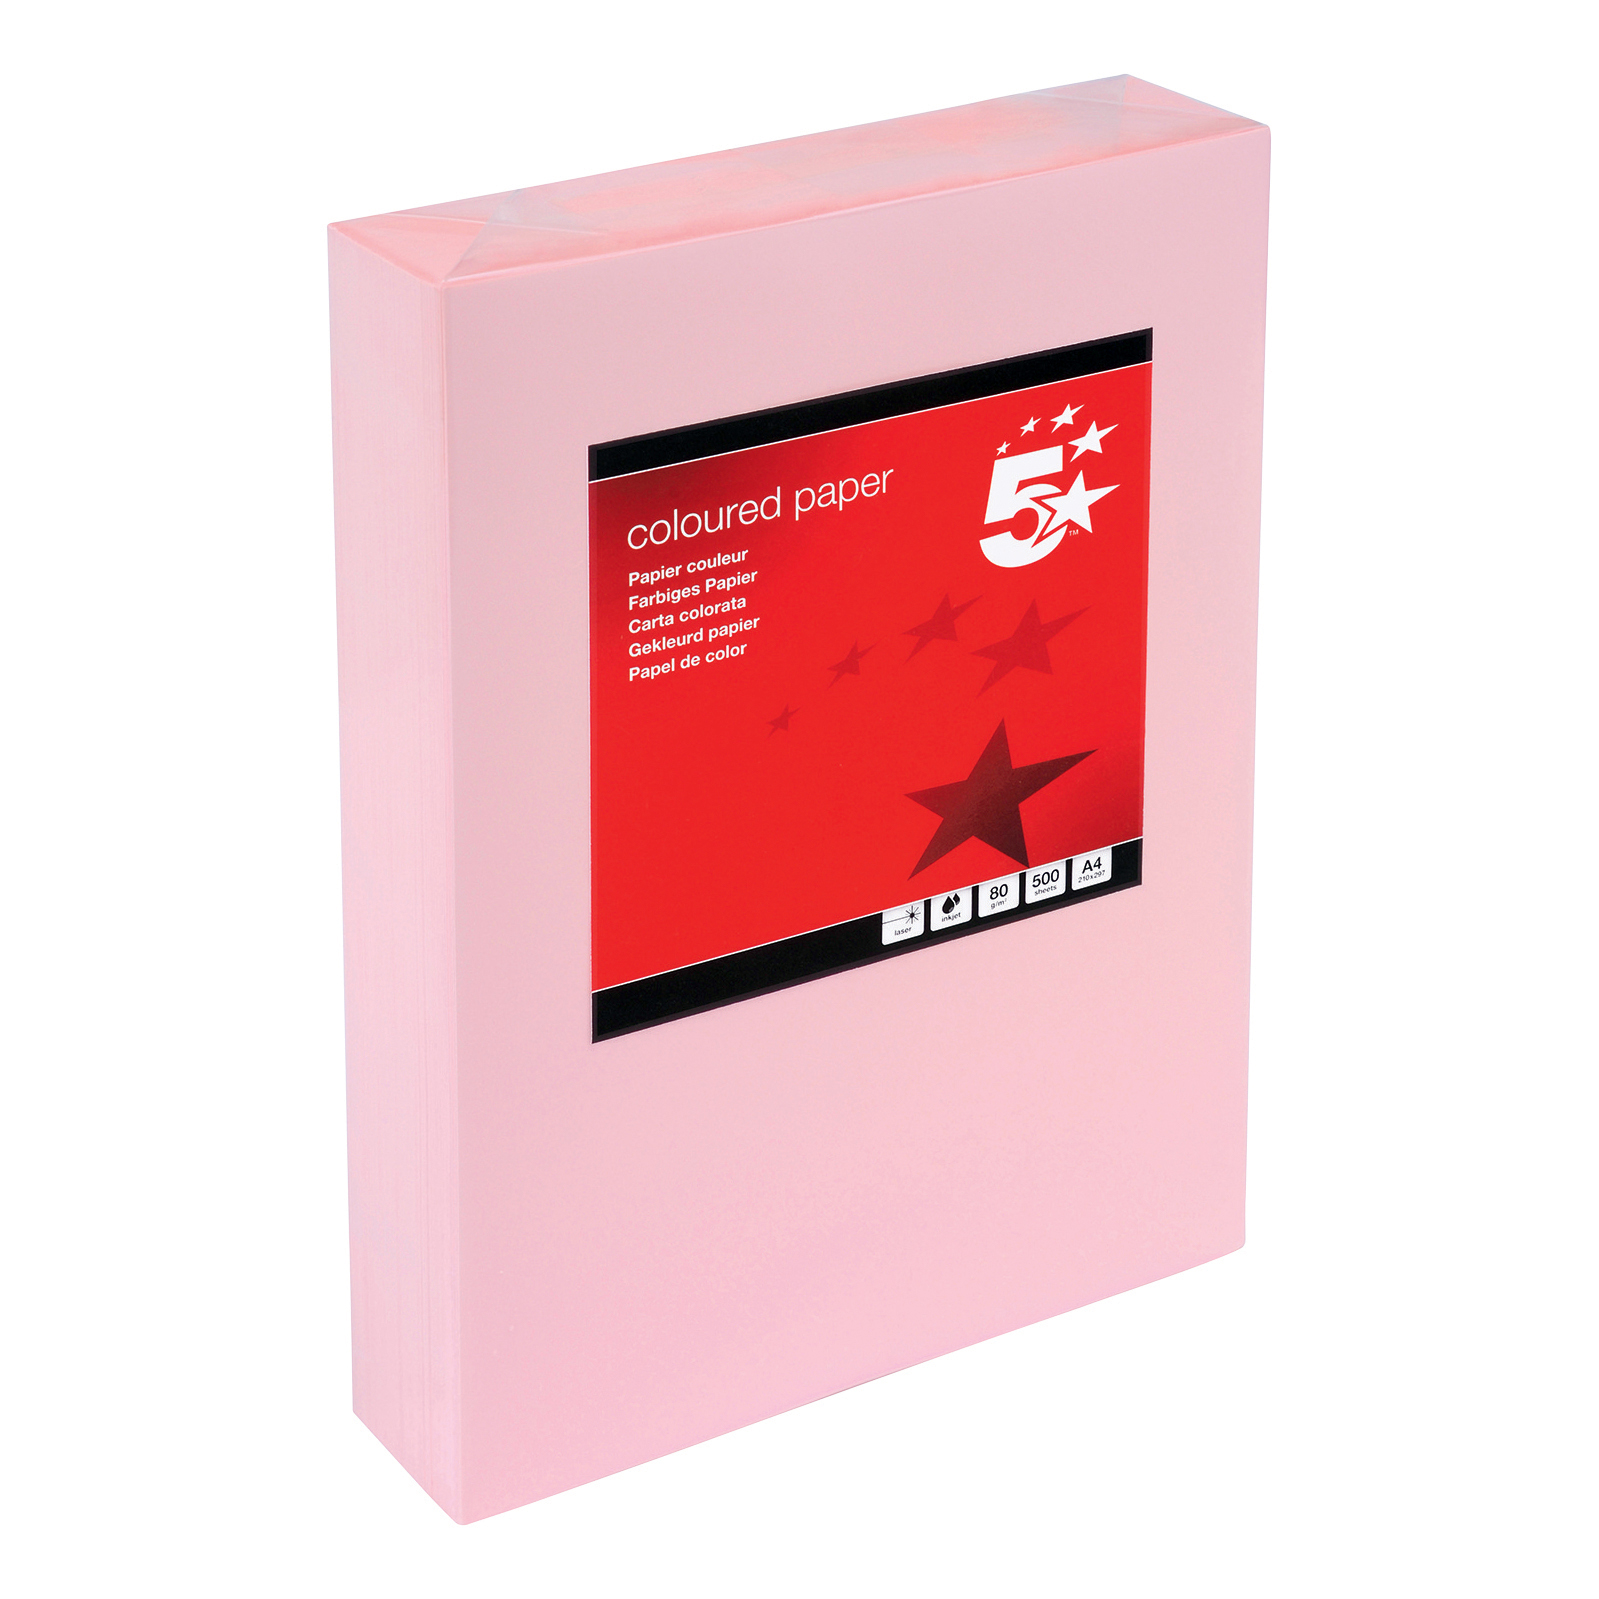 A4 5 Star Office Coloured Copier Paper Multifunctional Ream-Wrapped 80gsm A4 Light Pink 500 Sheets